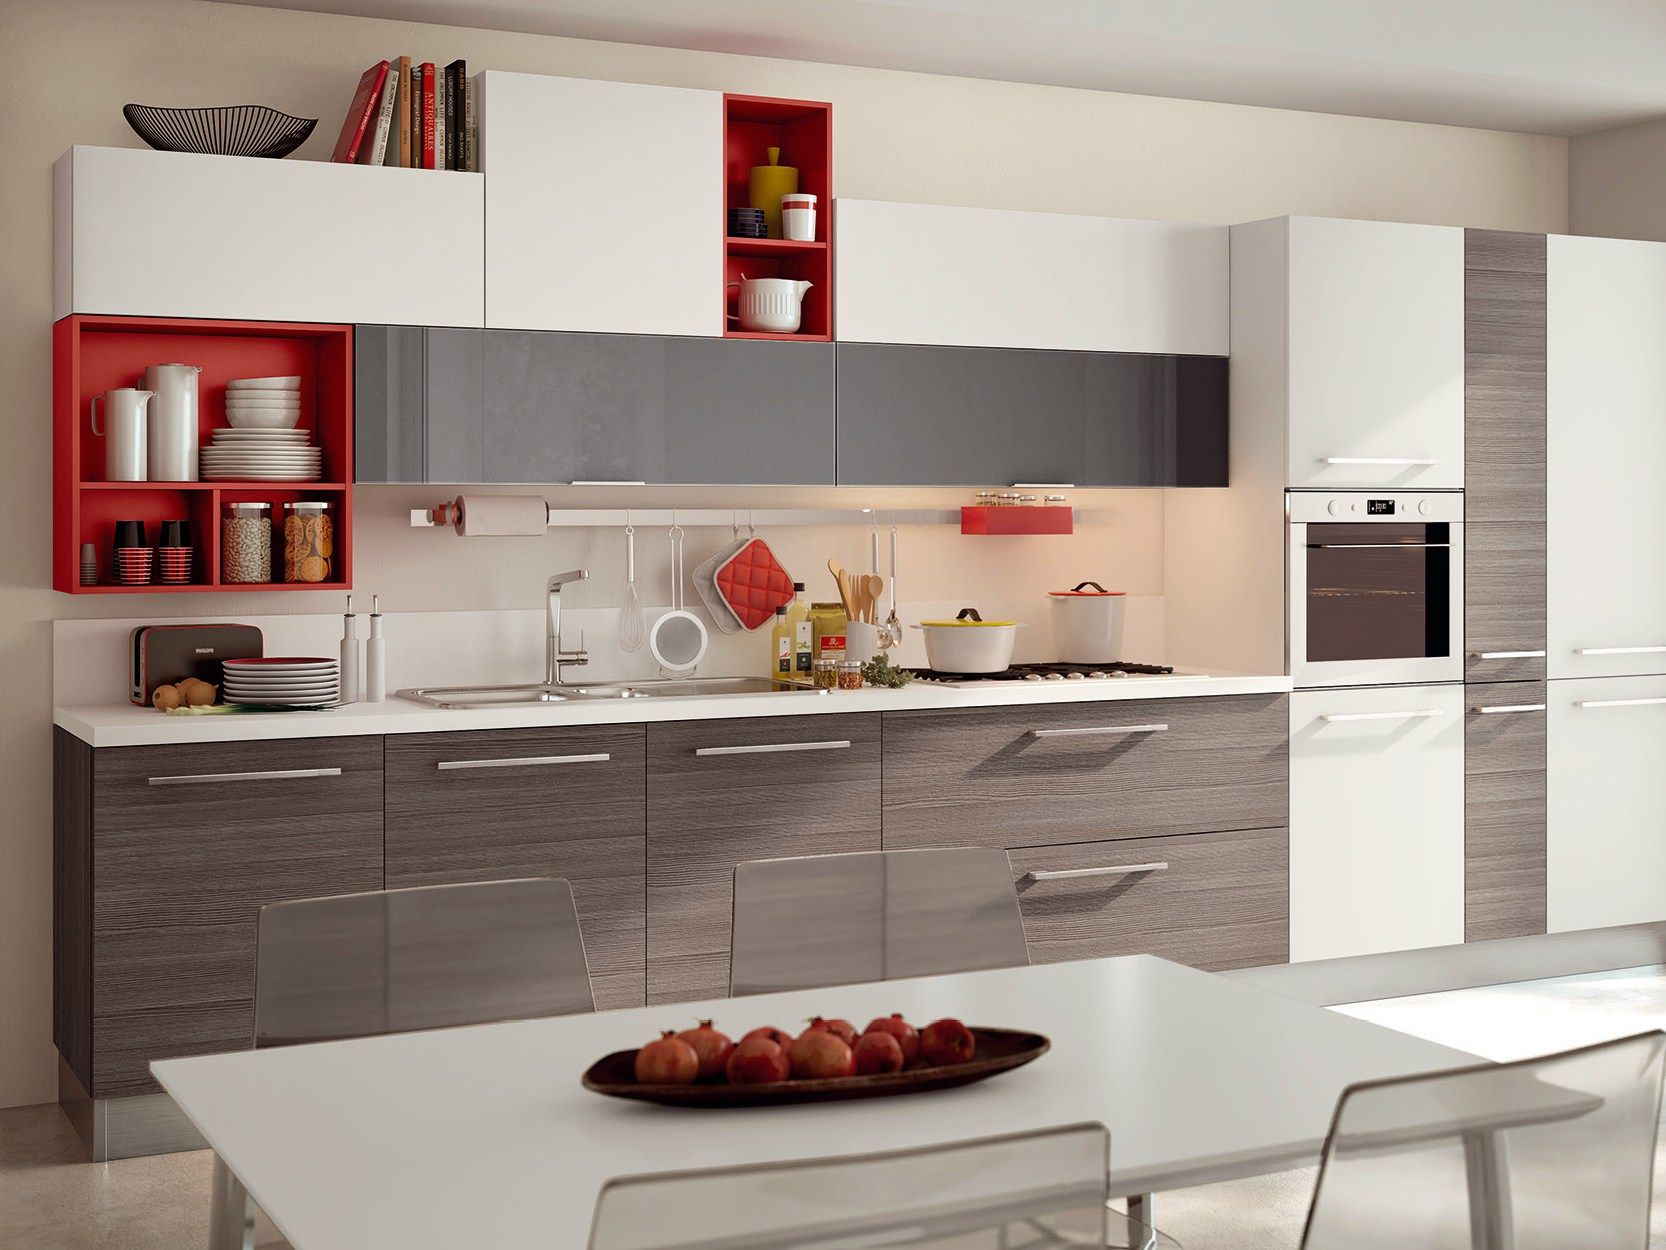 Awesome Nuove Cucine Lube Photos - Ideas & Design 2017 ...